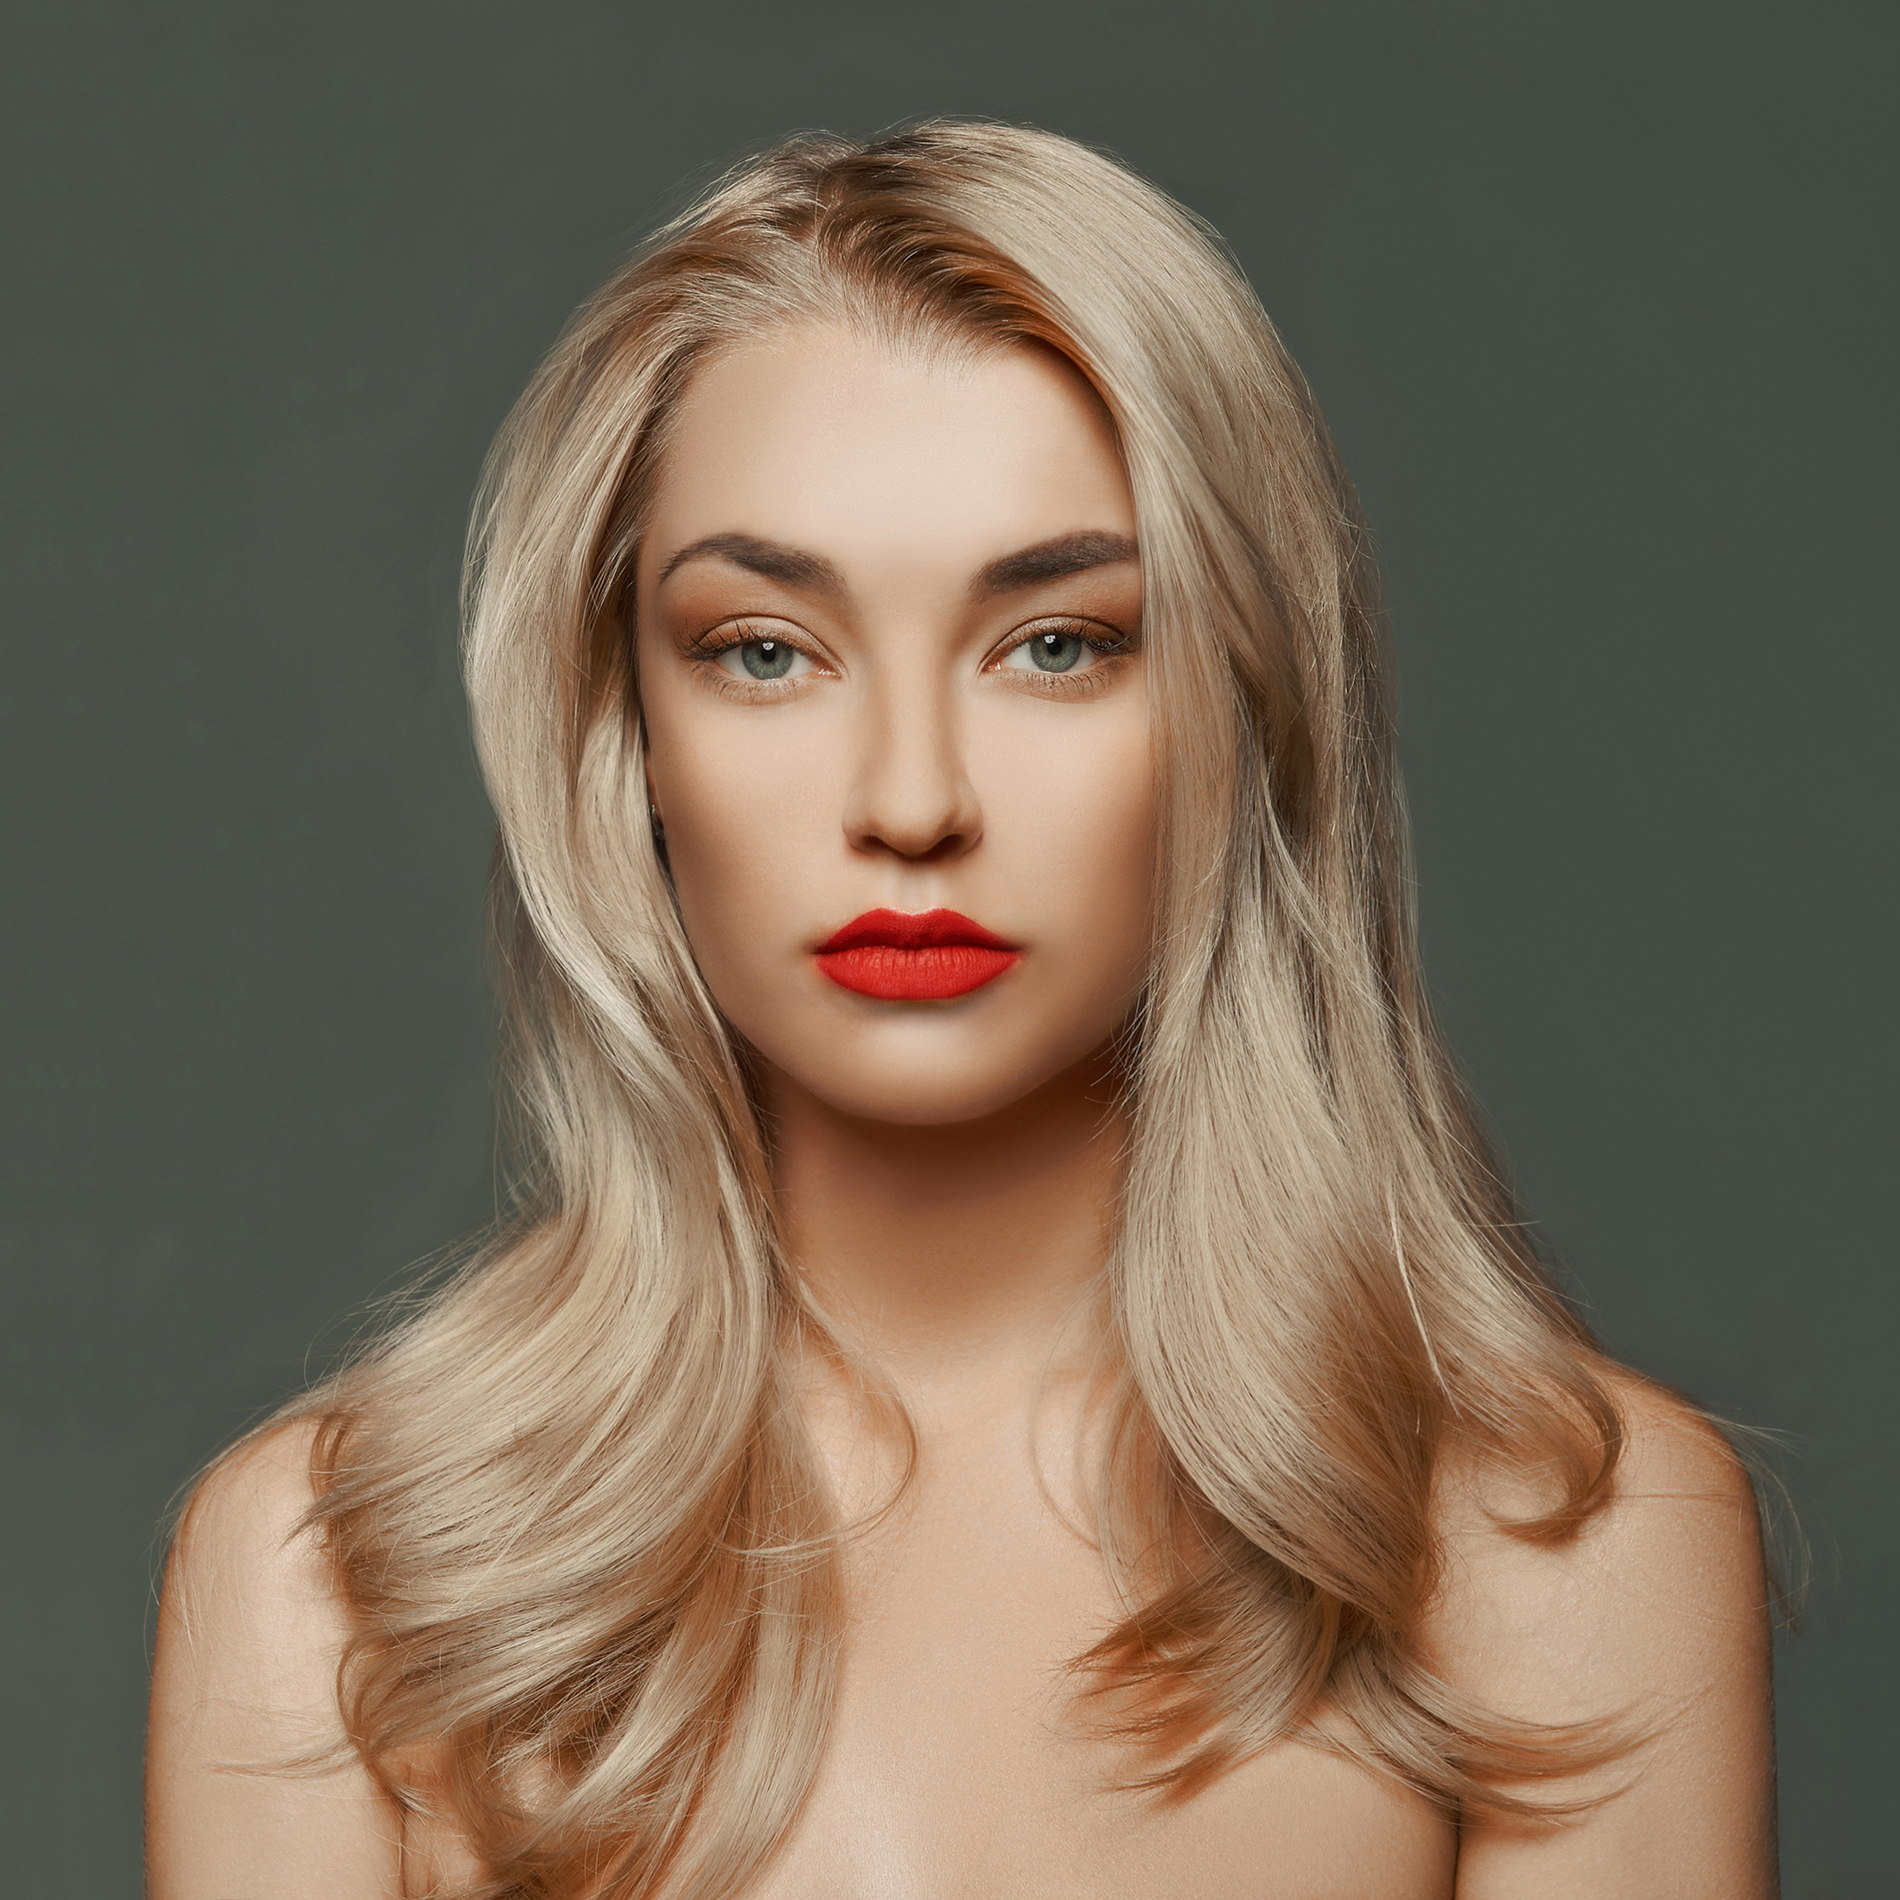 Blonde red lips makeup model 52984